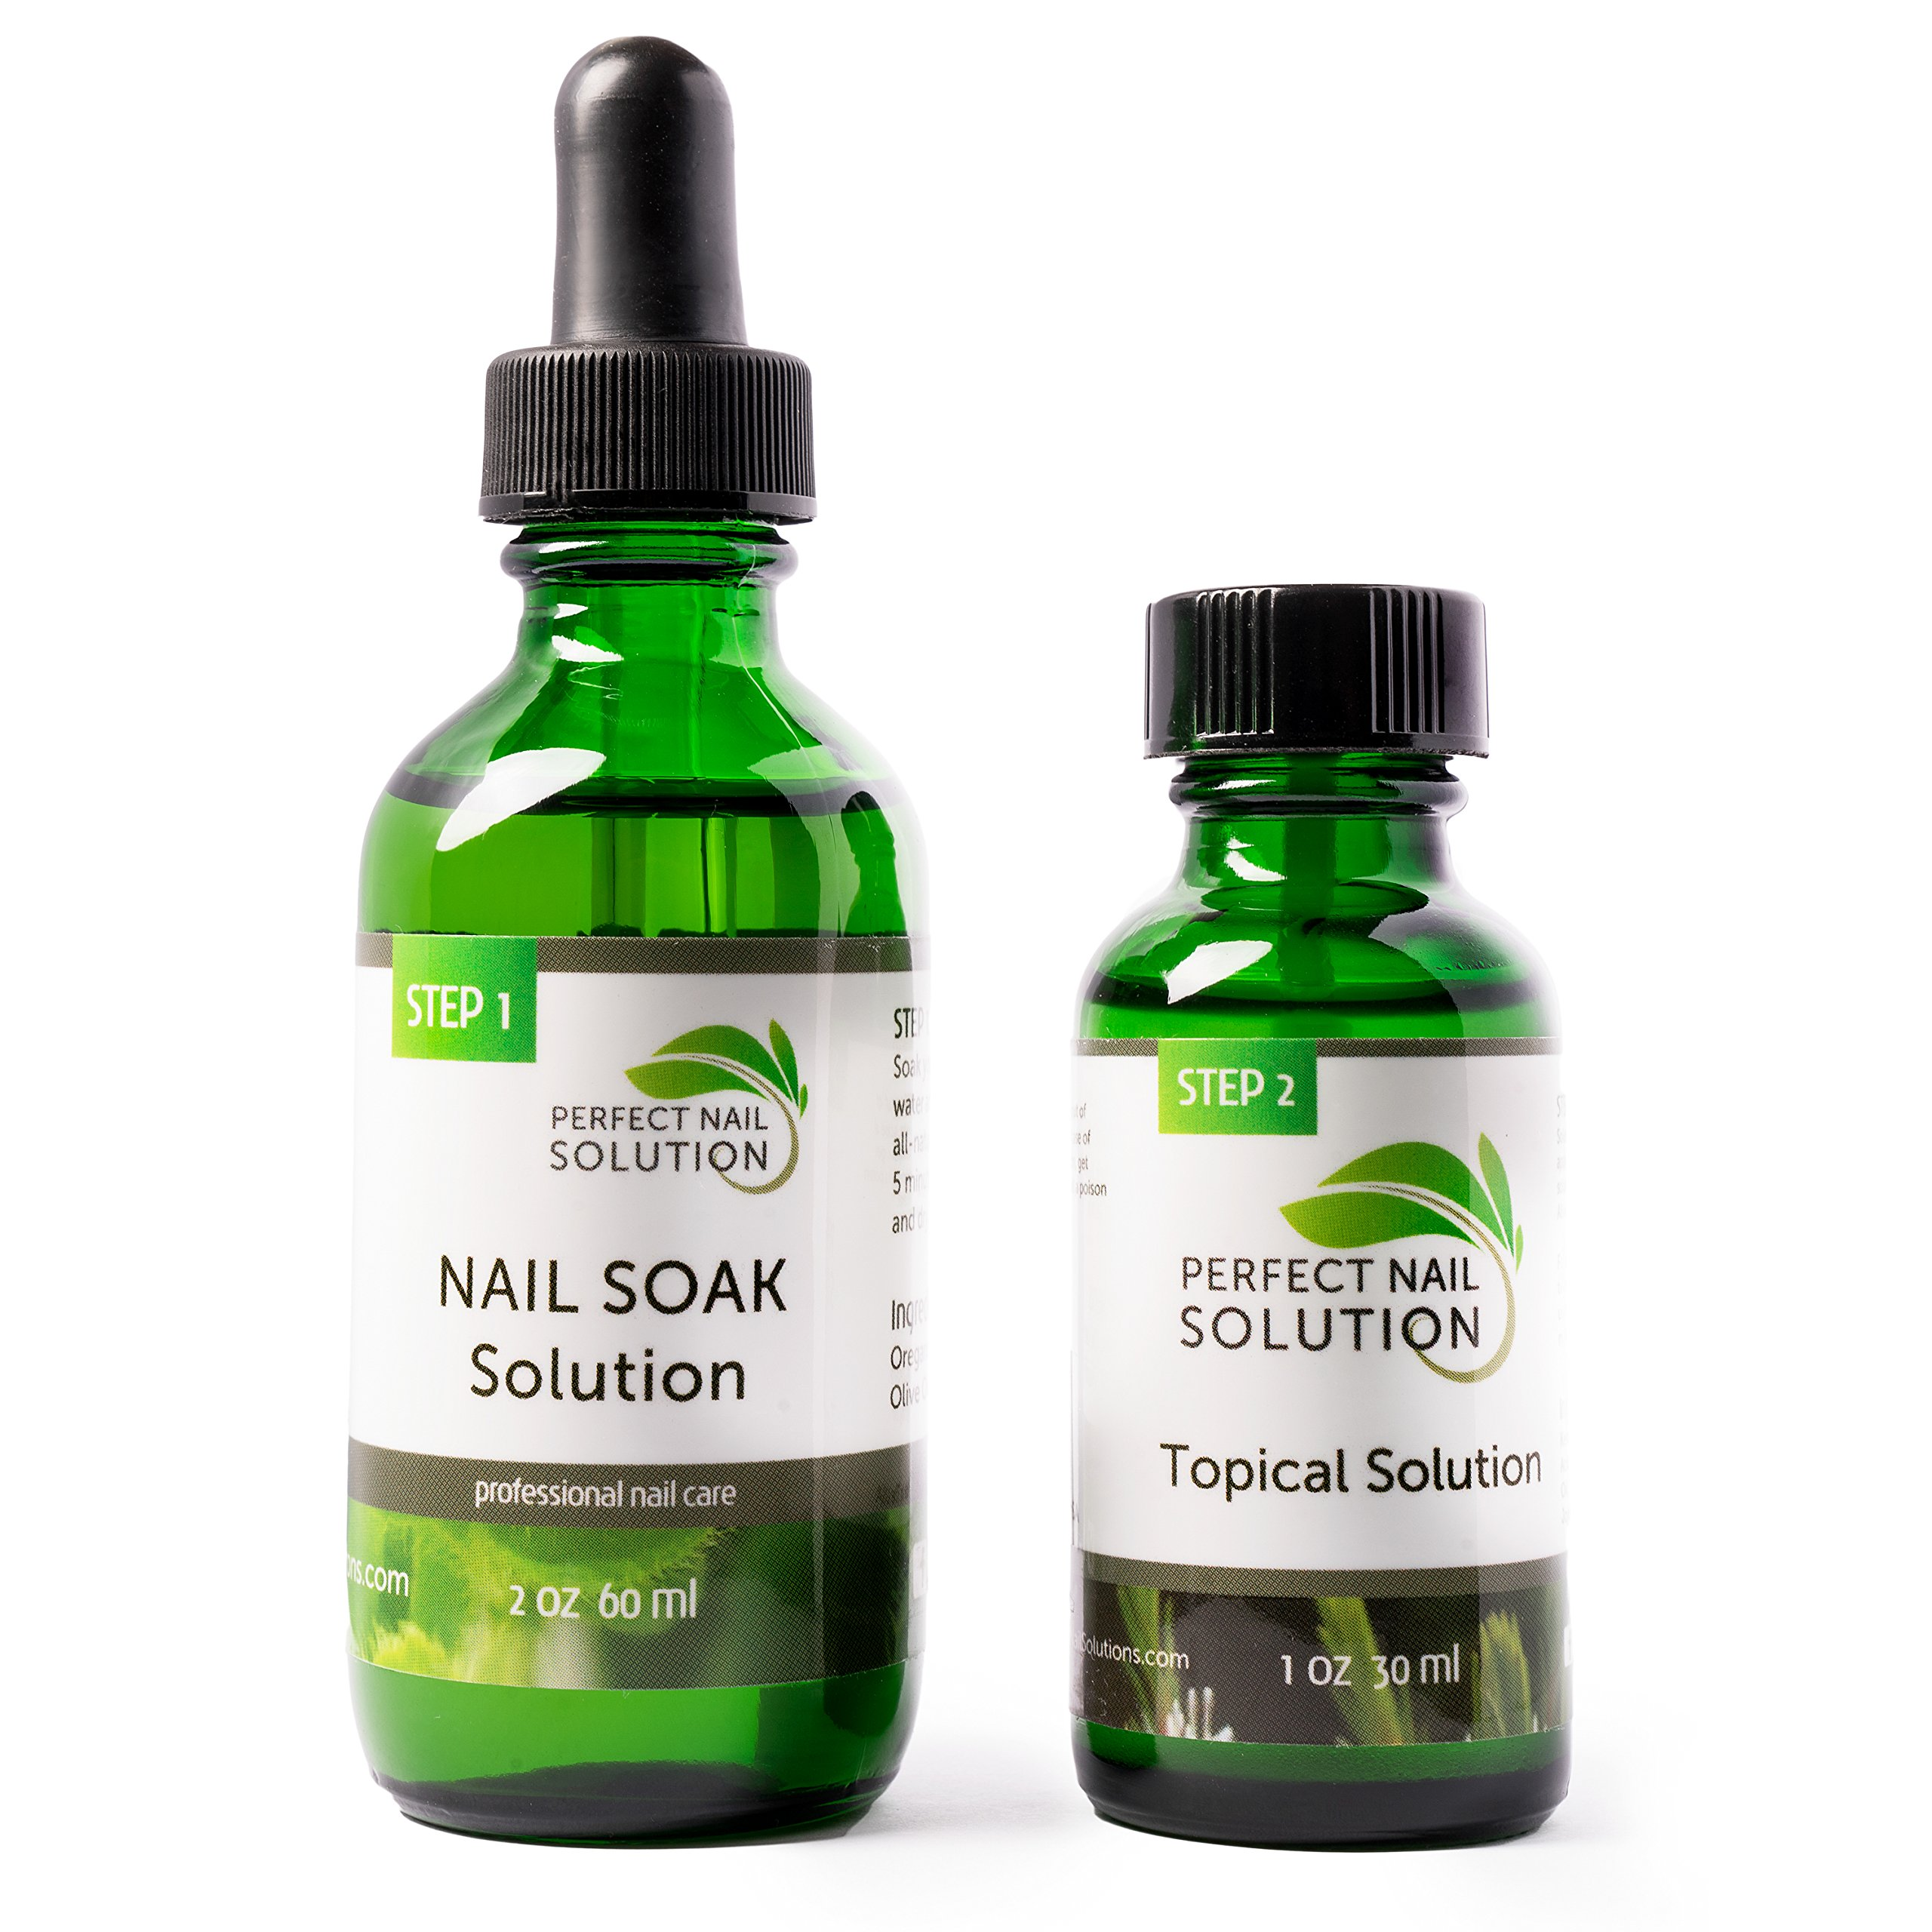 Toenail Fungus Treatment - Natural 2-Step Topical Anti-Fungal Solution with Oregano and Tea Tree Oil - Removes Yellow from Infected Finger & Toe Nails by Perfect Nail Solution